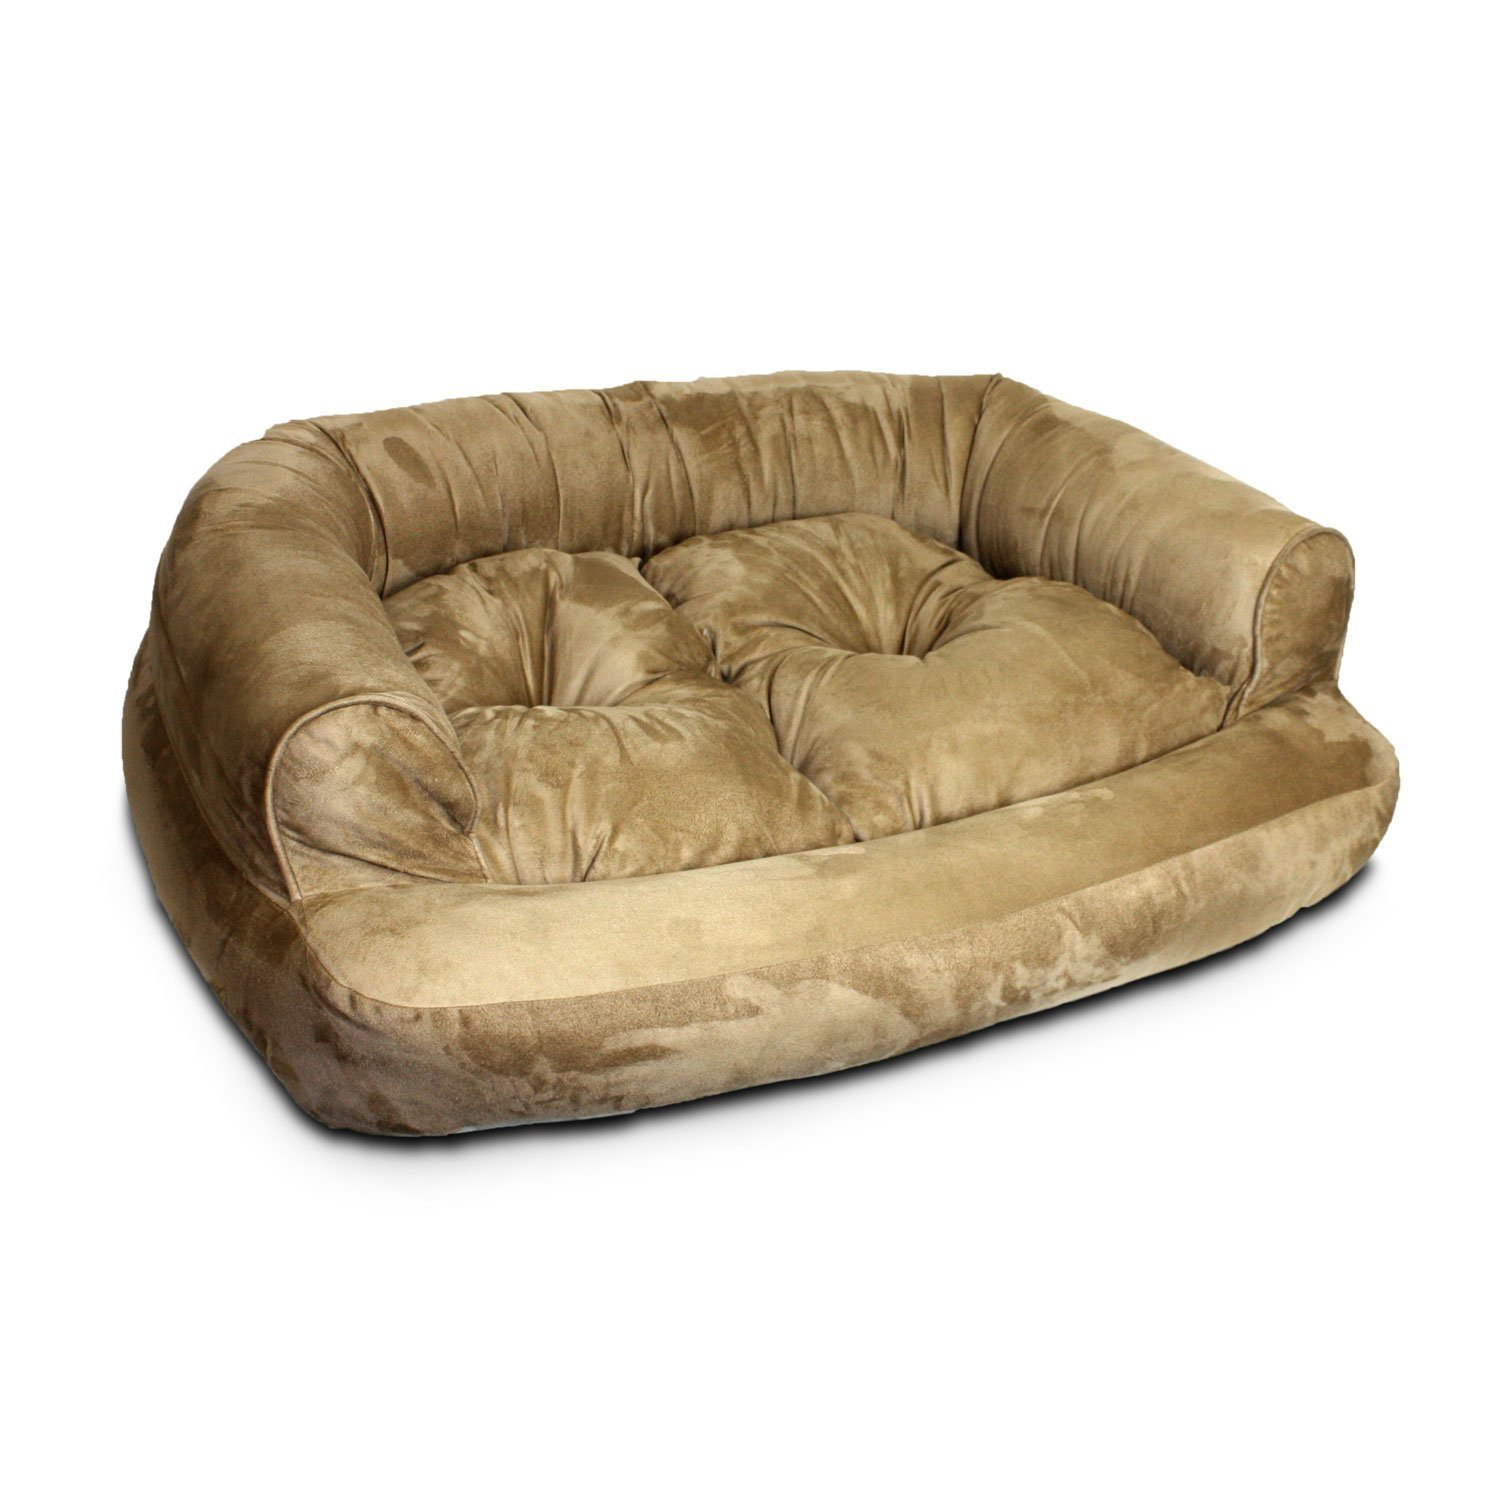 Amazon Snoozer Overstuffed Luxury Pet Sofa X Peat